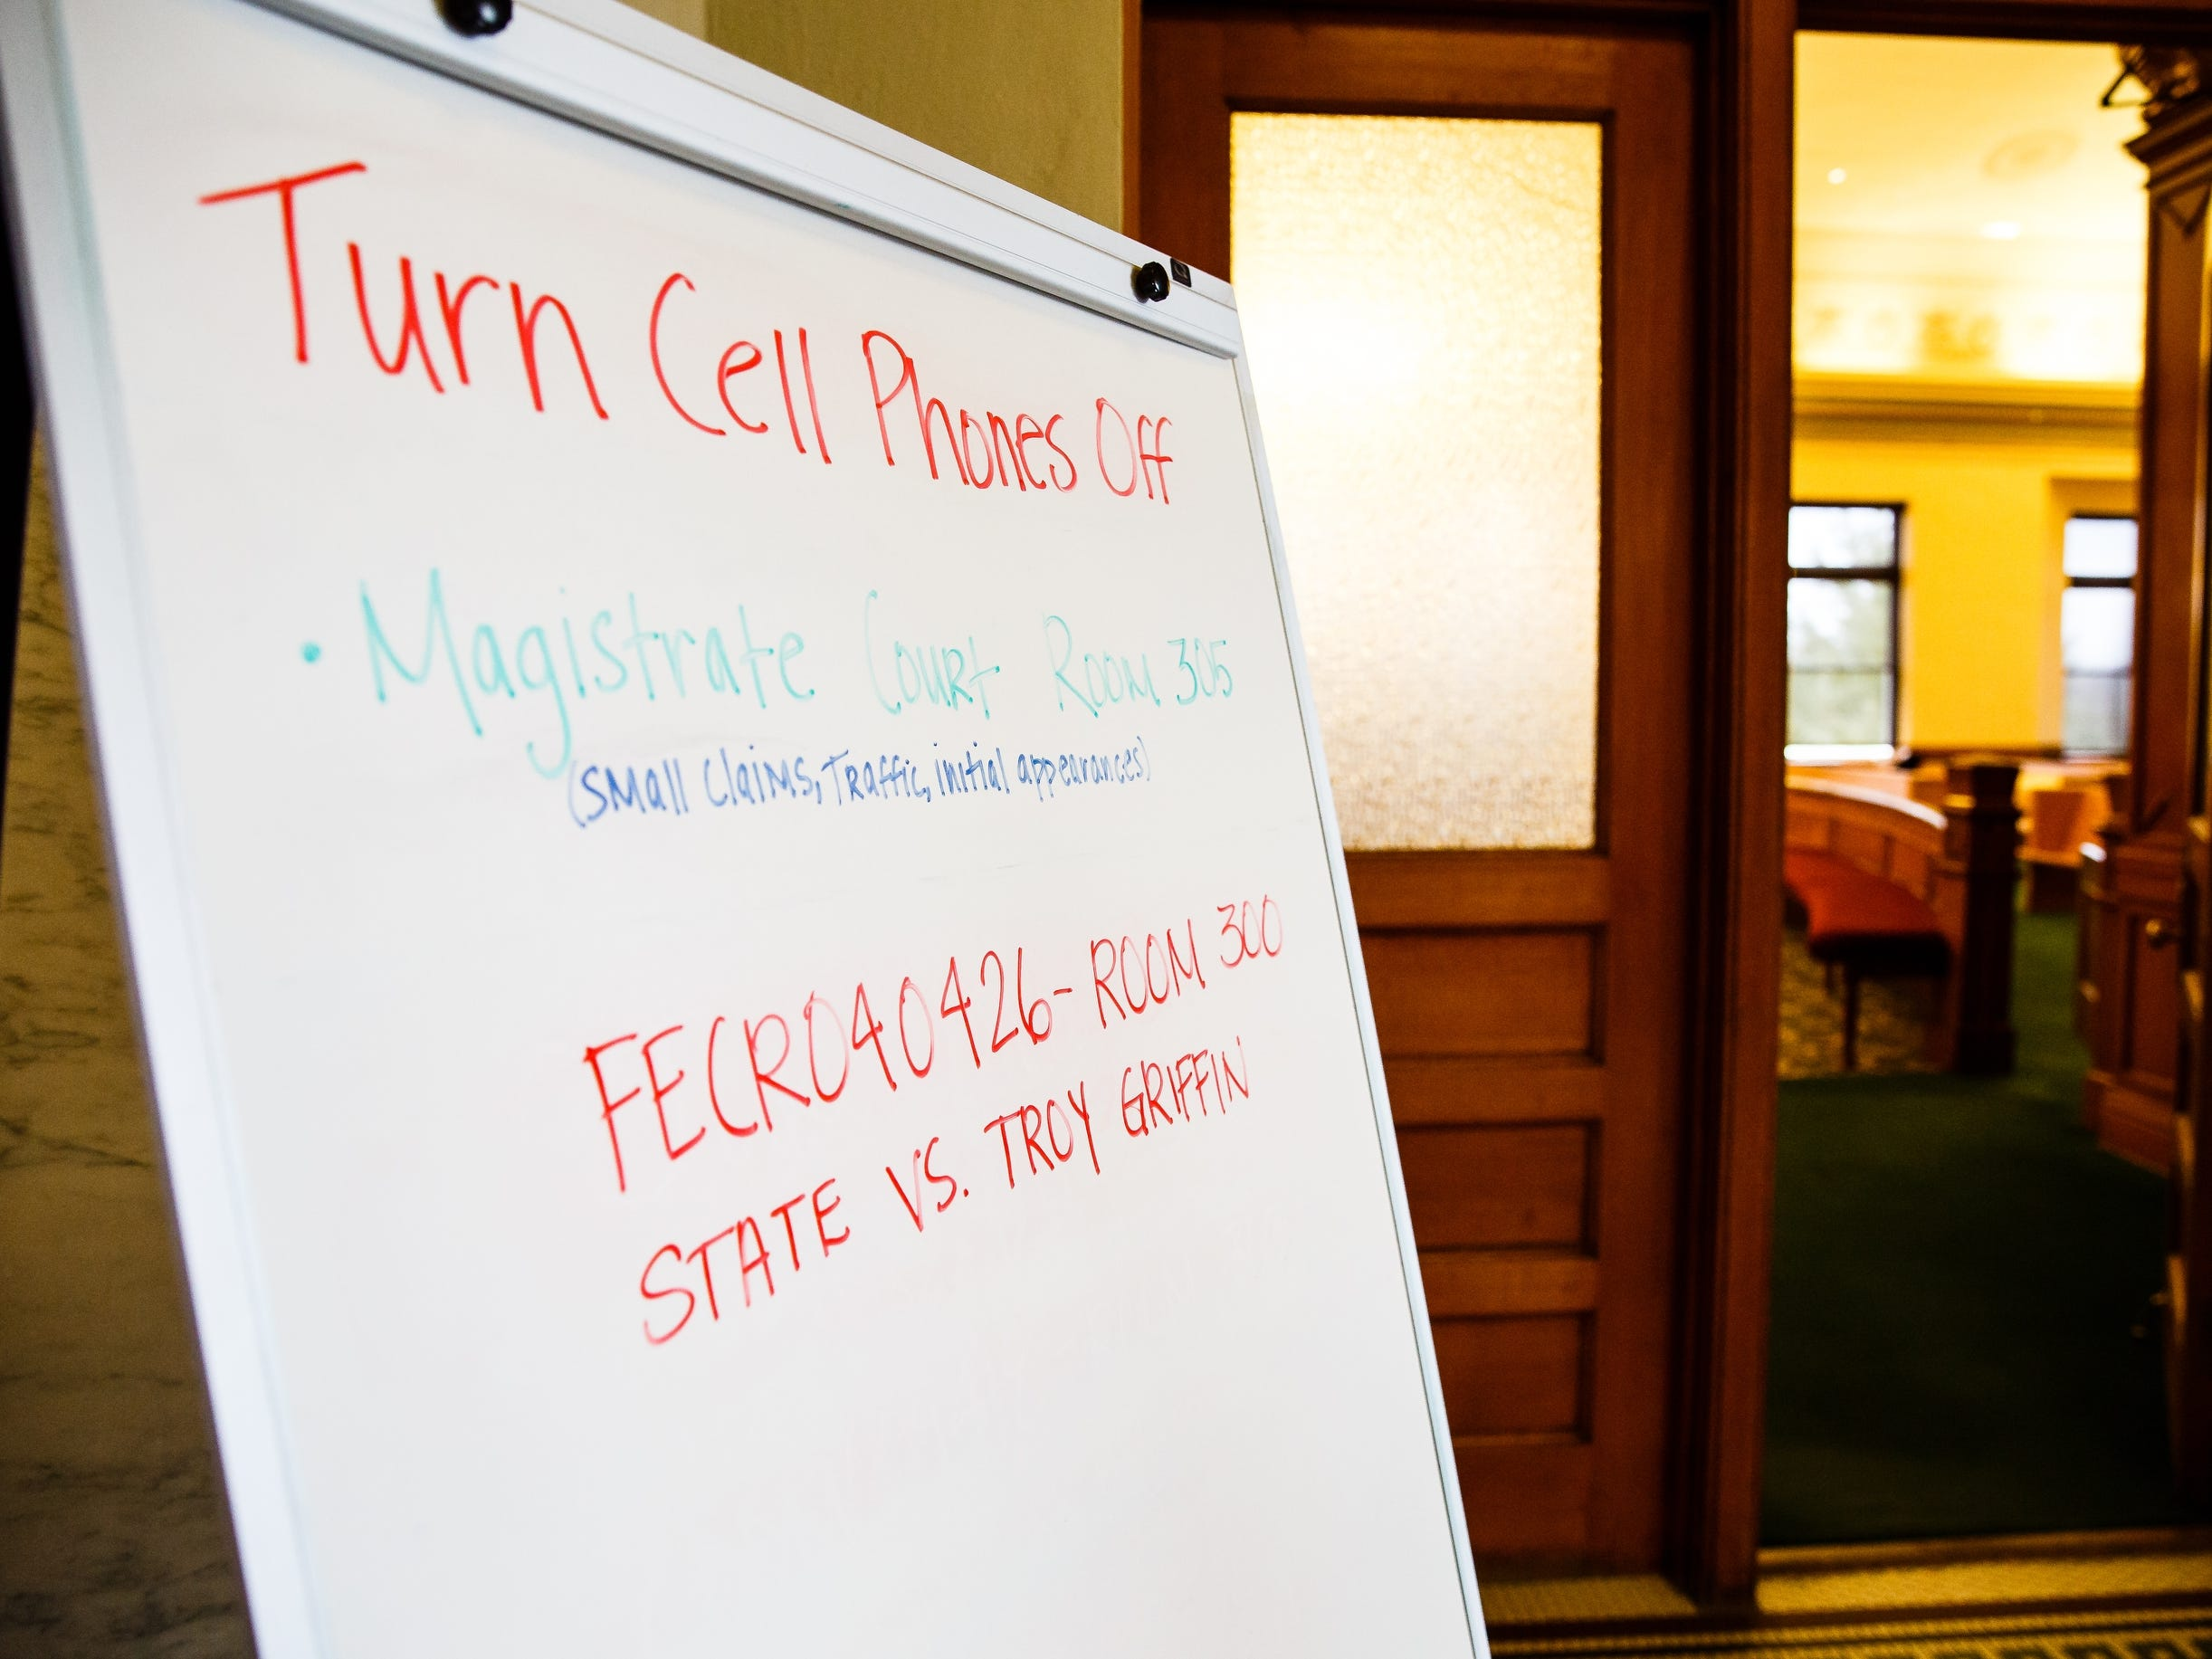 A whiteboard outside of room 300 in the Dallas County courthouse instructs visitors of the case and to turn off their phones on Thursday, Oct. 25, 2018, in Adel.